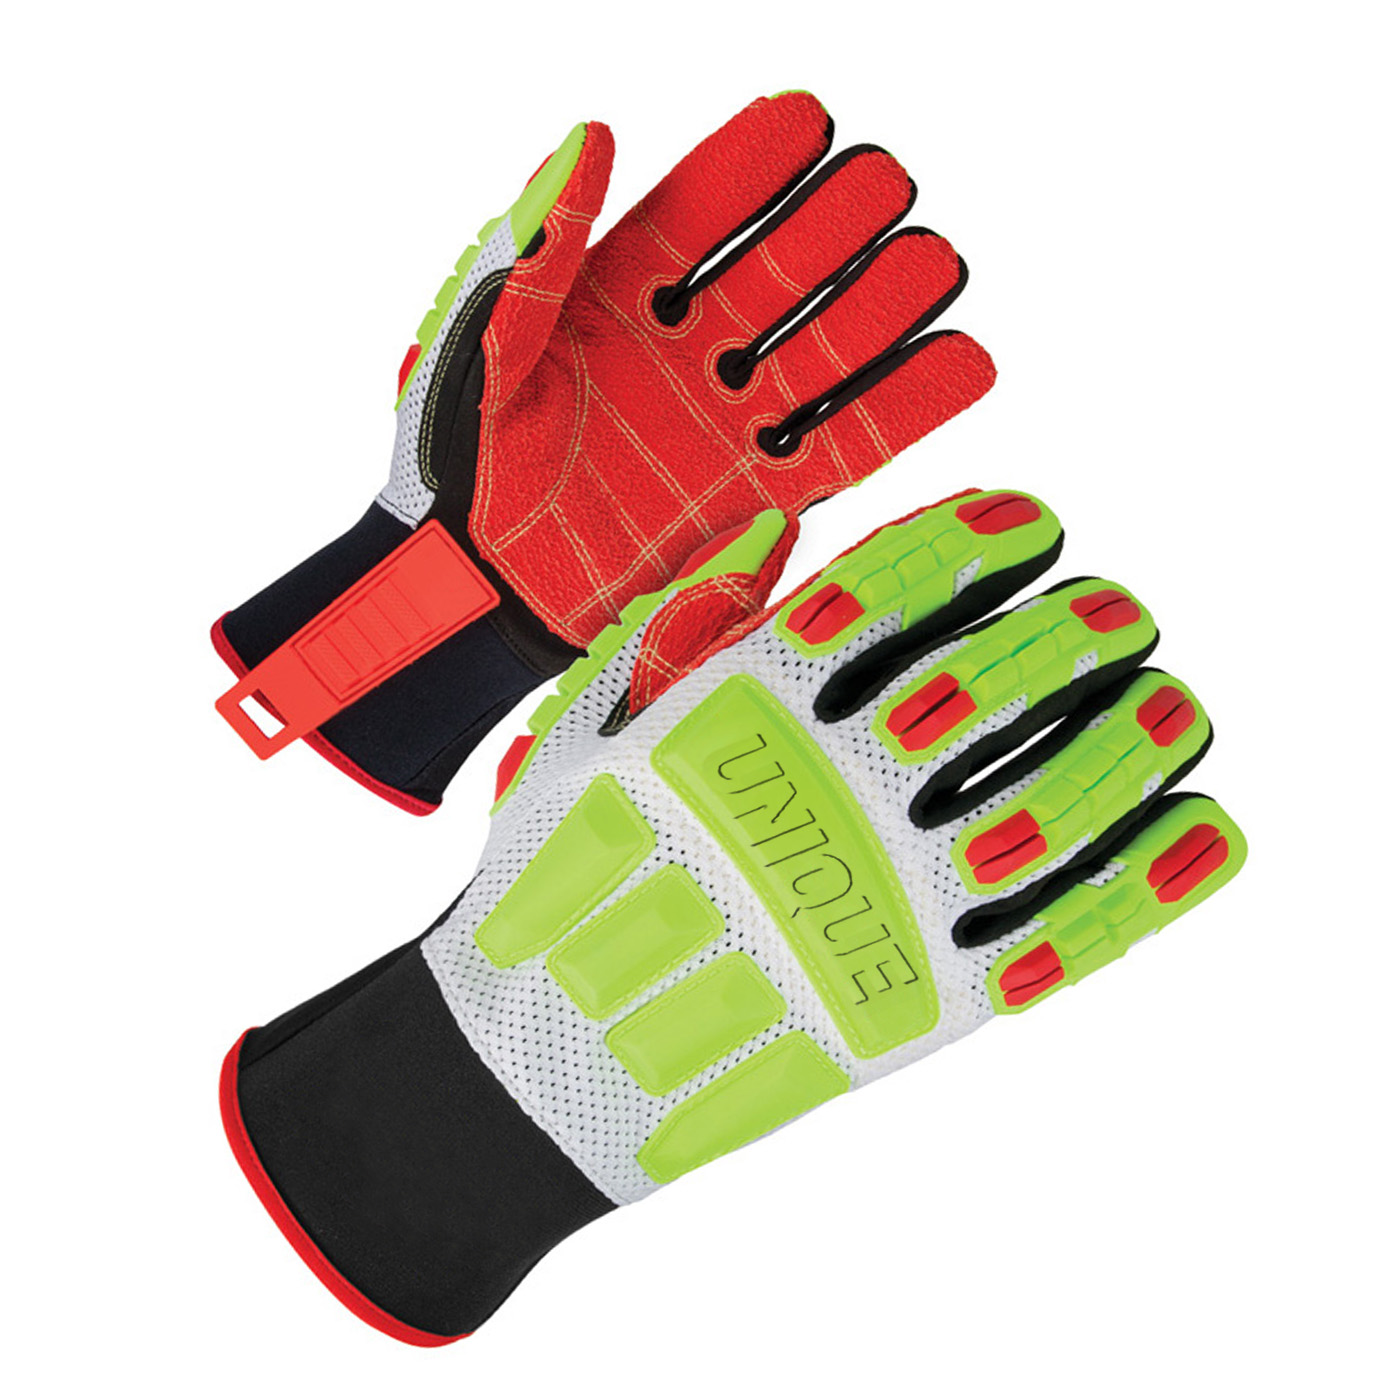 TPR Impact glove with waterproof PVC coated